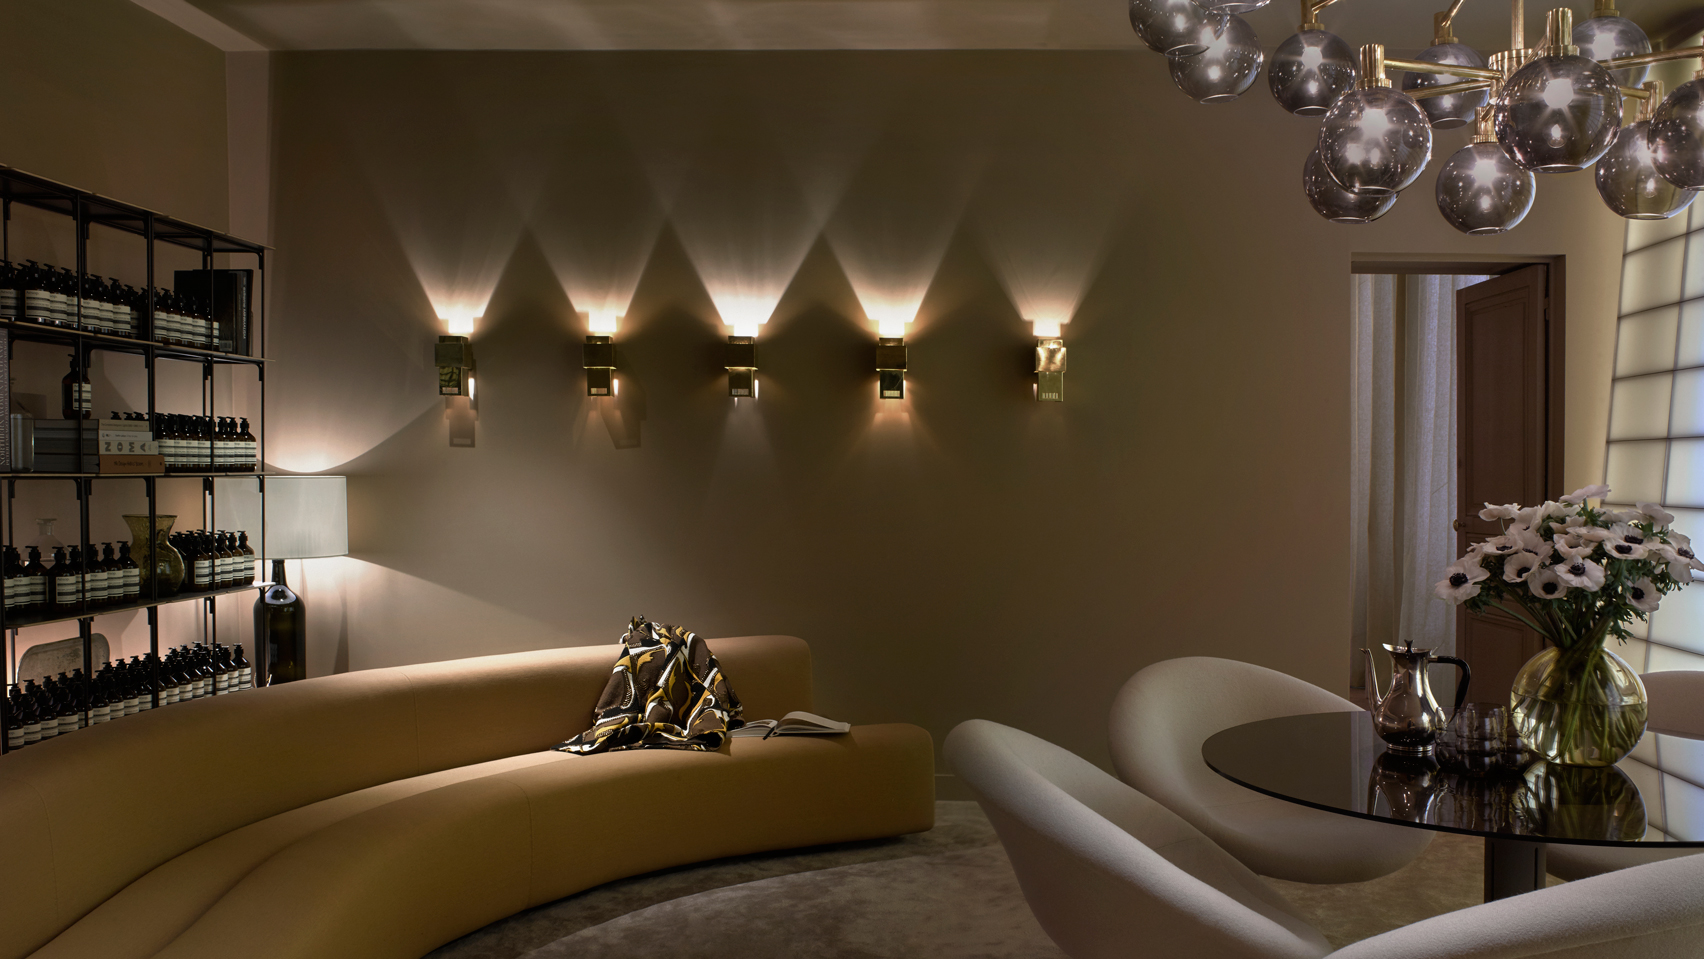 Ordinary Spa Interior Design Part - 6: Aesopu0027s Paris Offices Converted Into Temporary Treatment Rooms